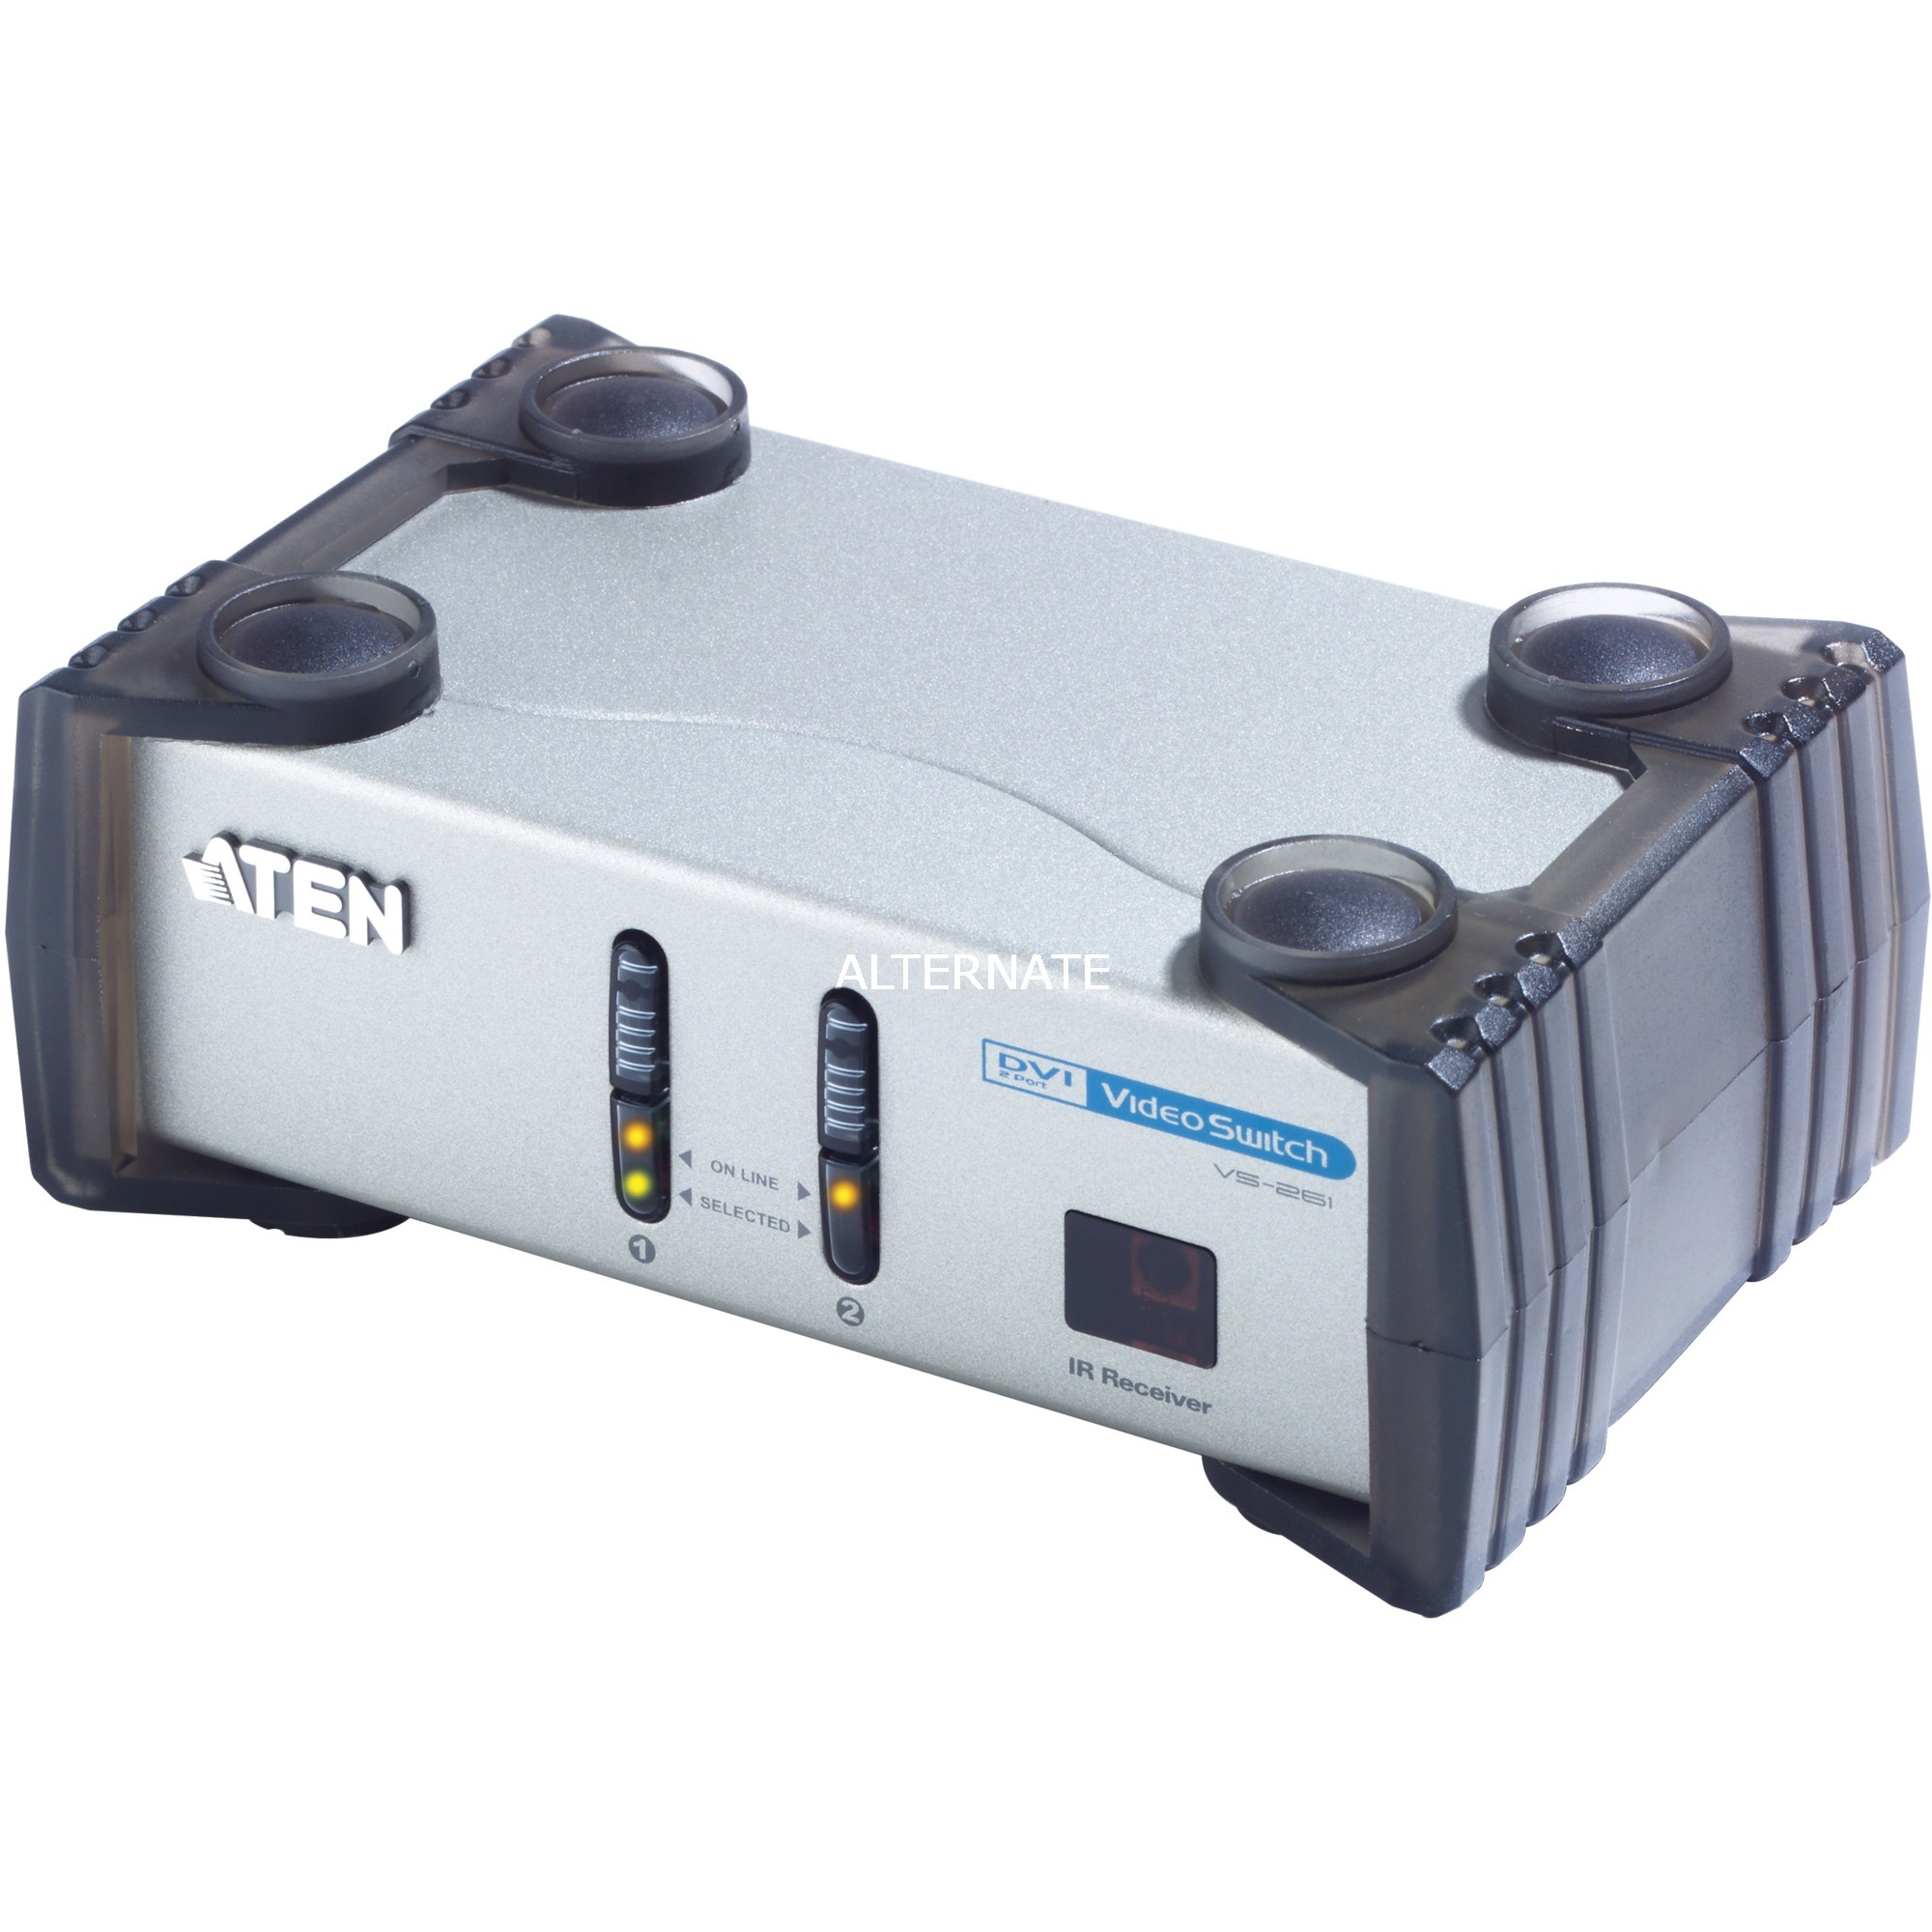 vs261-at-g-2-port-dvi-video-switch-splittere-switche